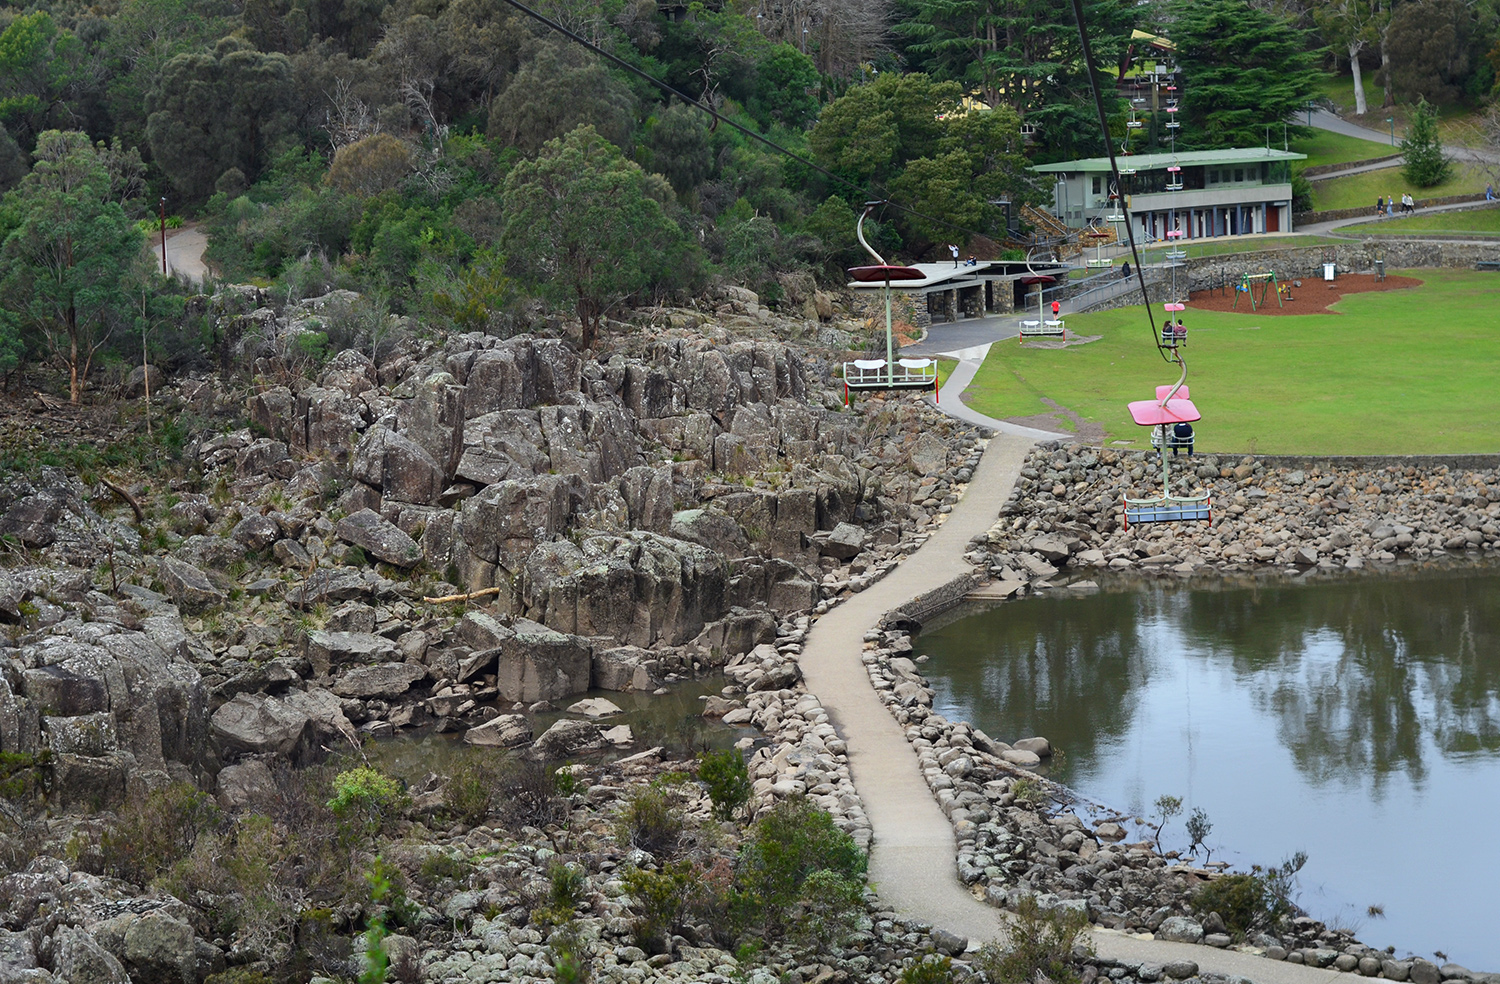 Cataract Gorge Reserve chairlift, things to do in Launceston Tasmania, Australia premium travel blog